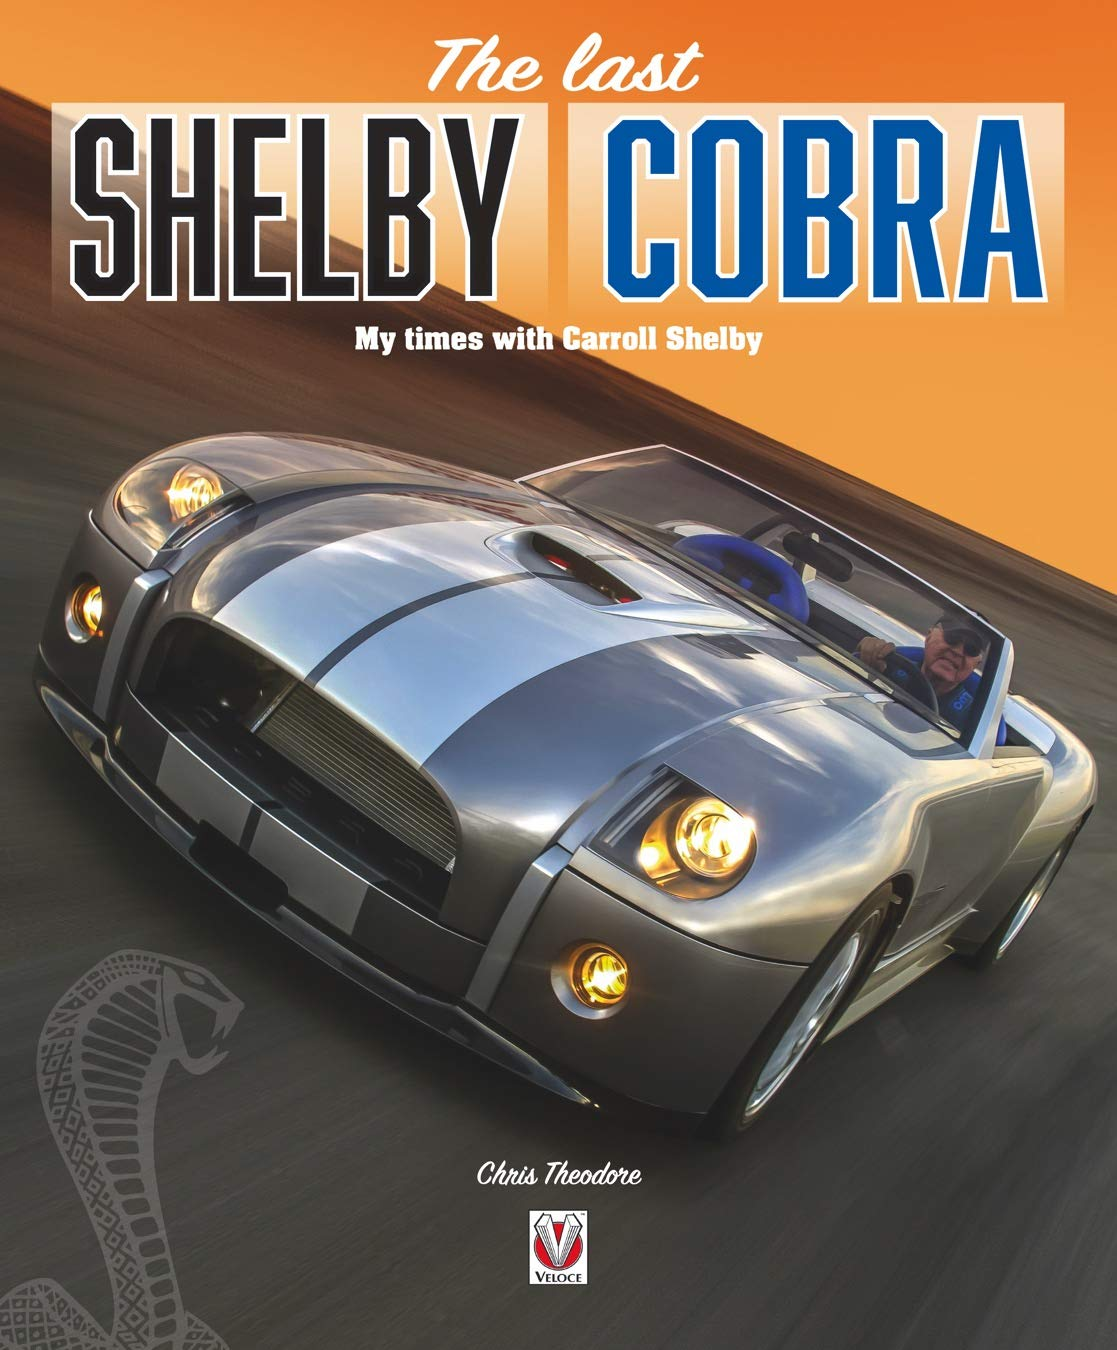 the last shelby cobra my times with carroll shelby theodore chris 9781787114500 amazon com books the last shelby cobra my times with